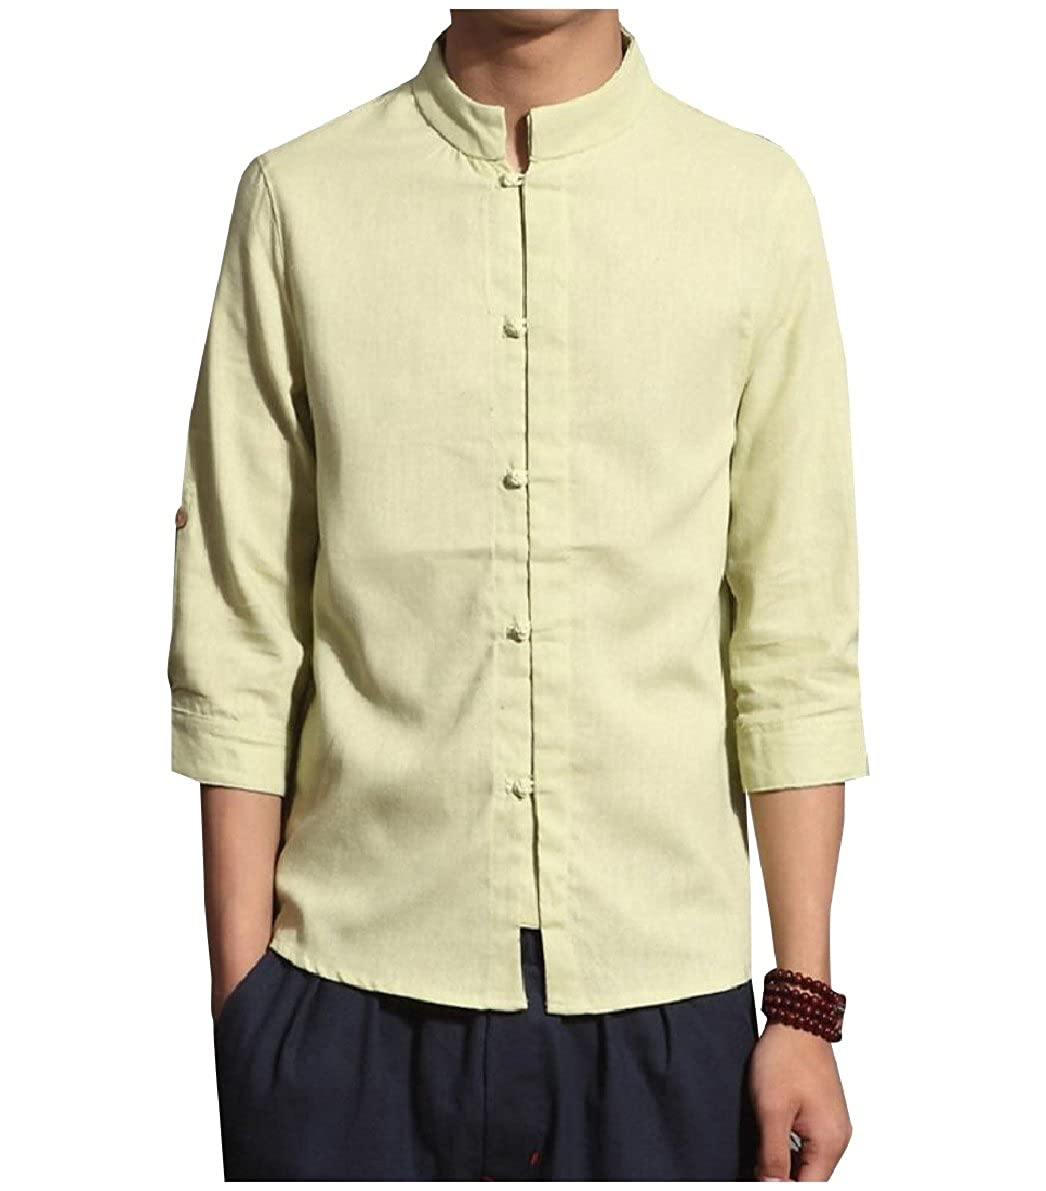 Zimaes-Men Pure Color Plus Size Chinese Style Mandarin Collar Shirts